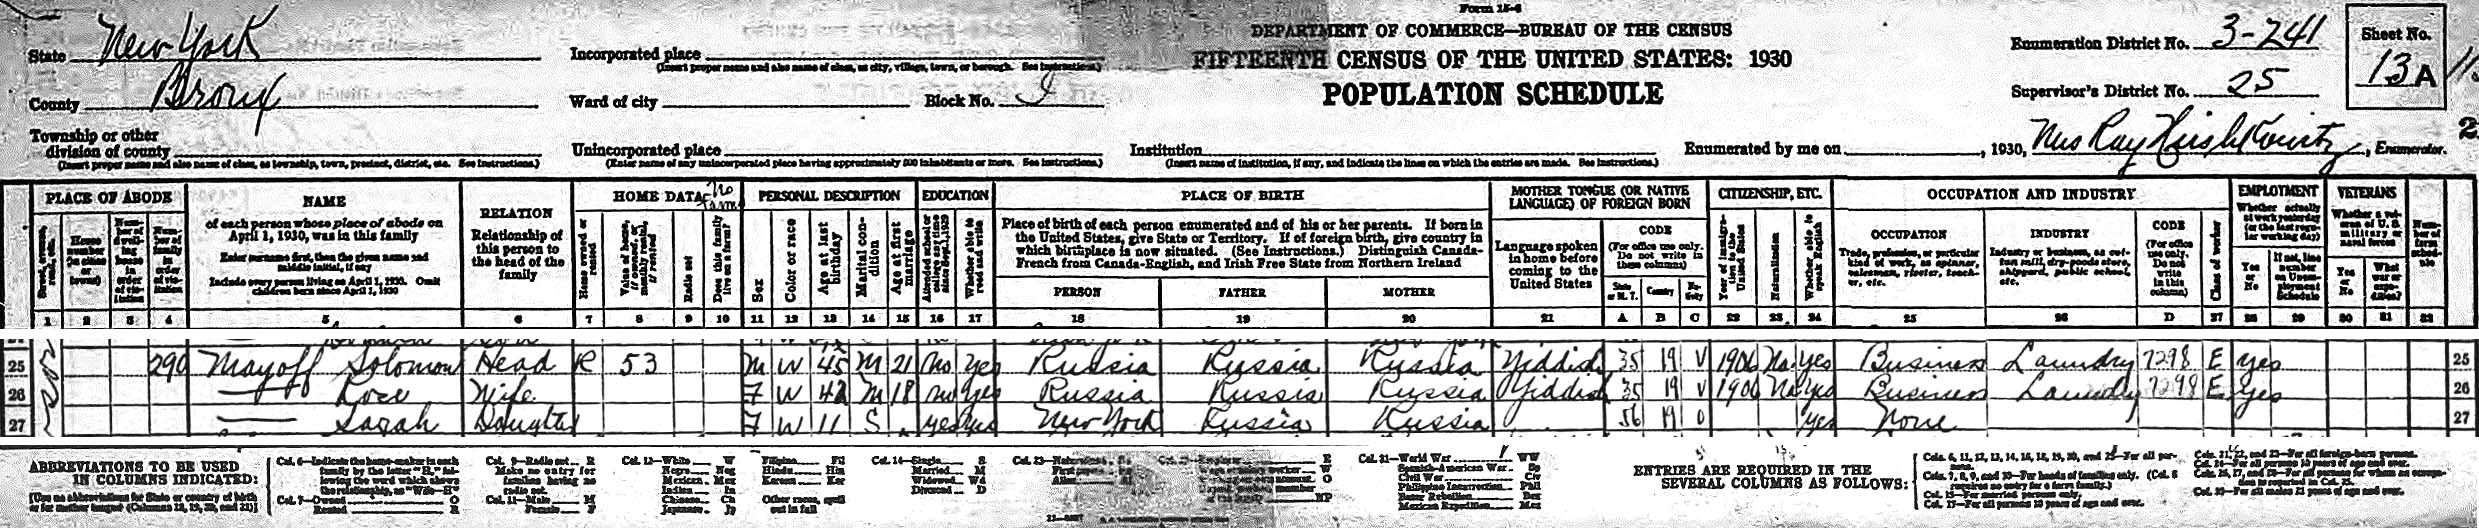 portion of this 1930 census page